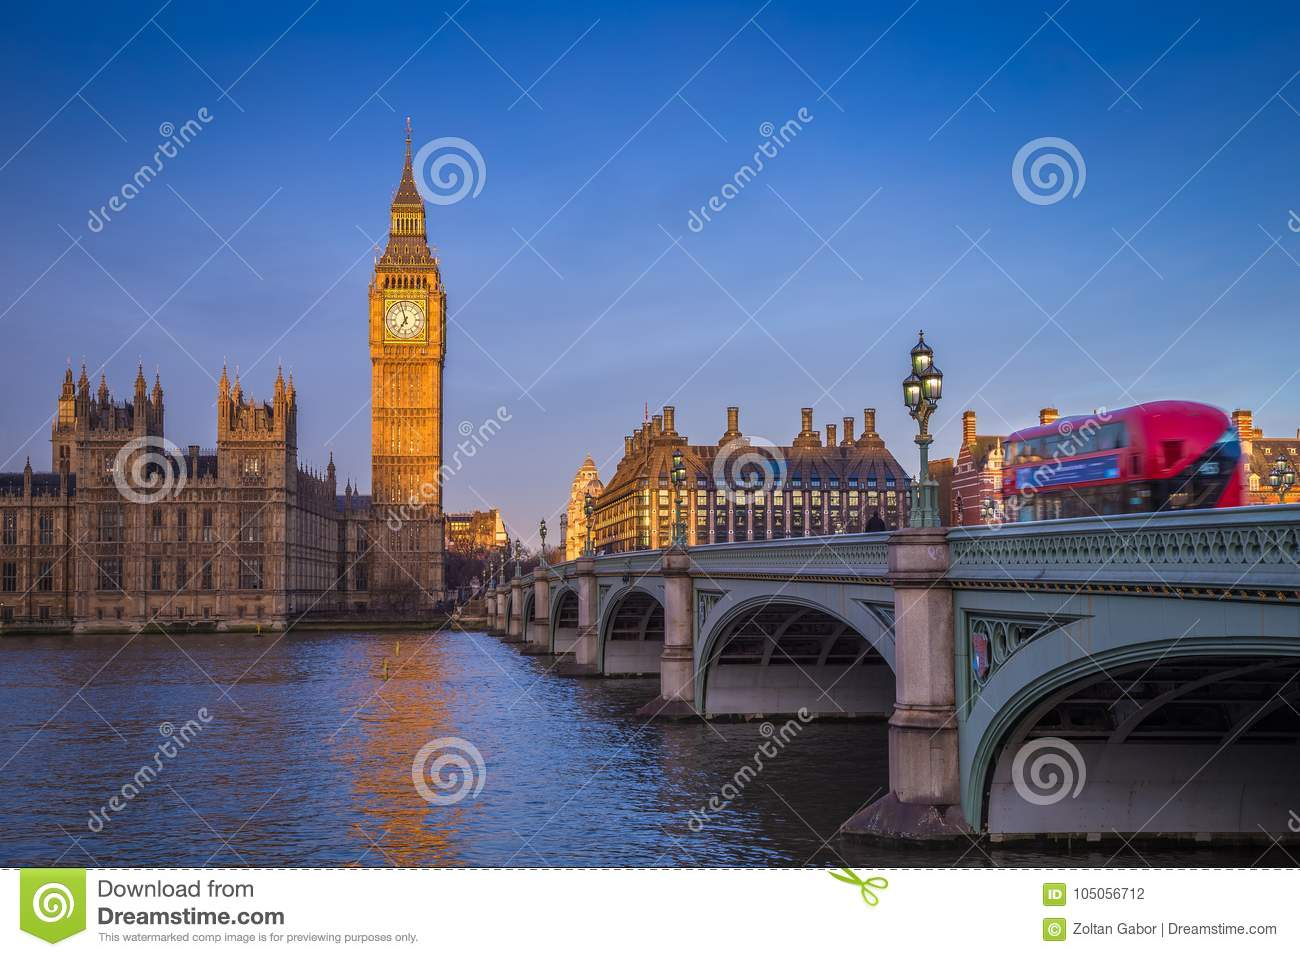 London, England - The iconic Big Ben with Houses of Parliament and traditional red double decker bus